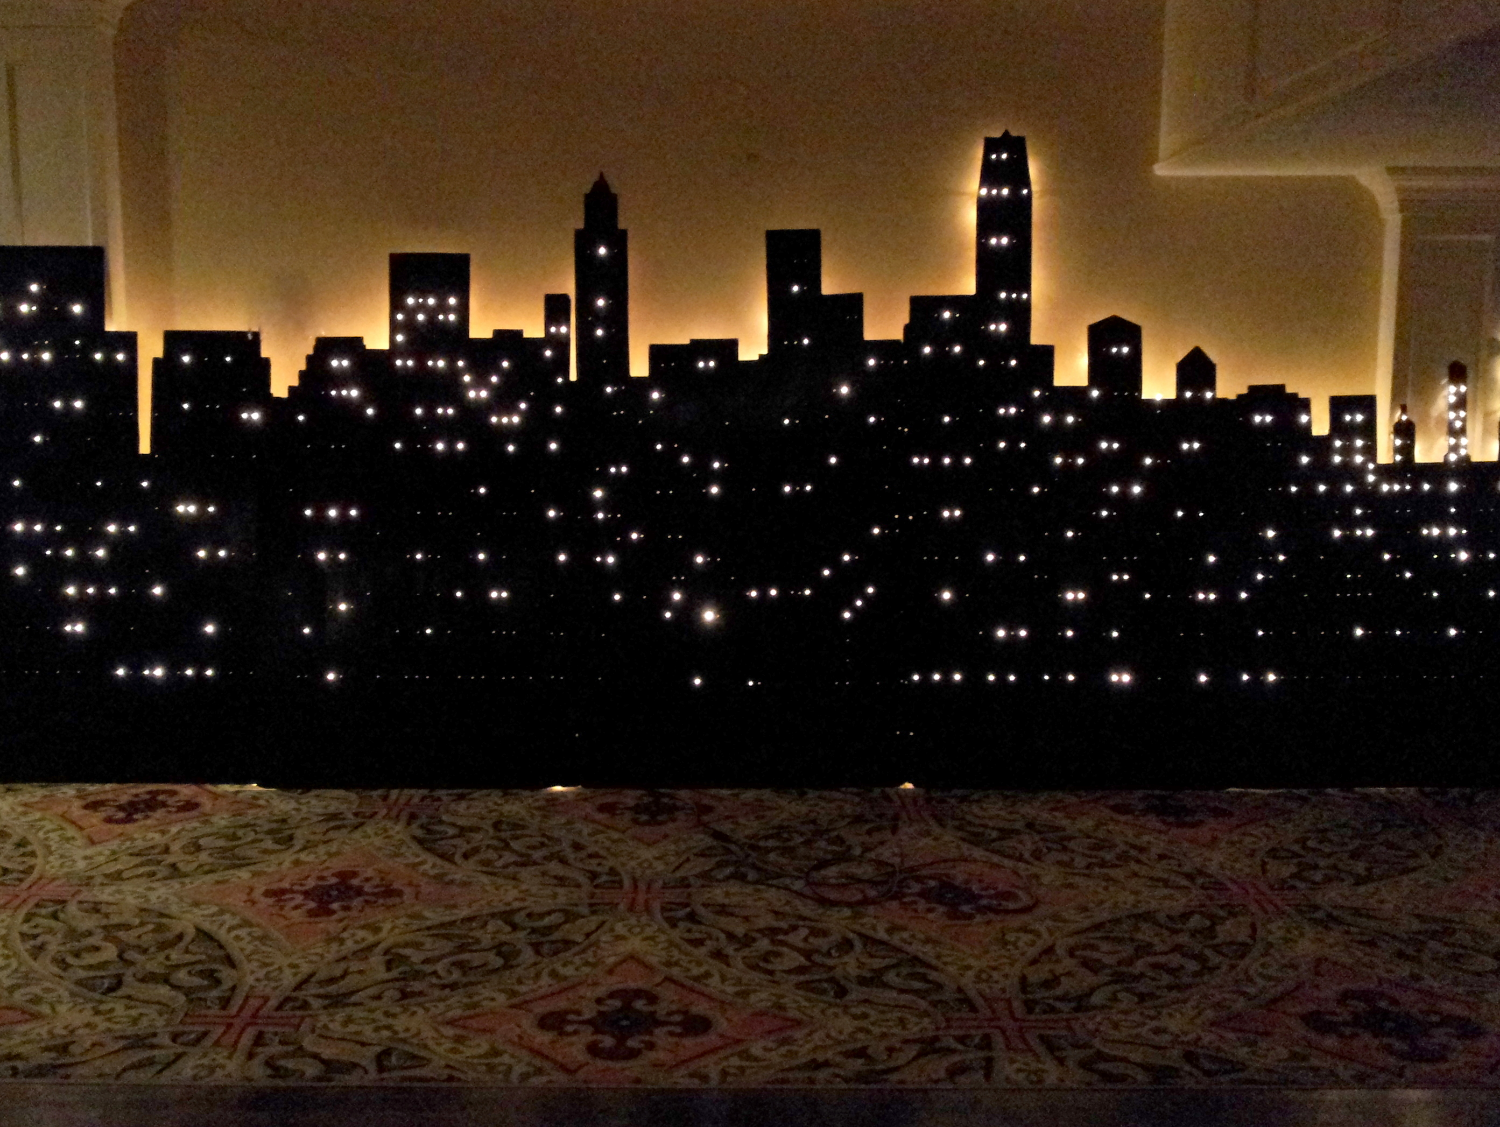 New York City Sky Scenery-Wood, measures 20 ft wide and varies height from 6 to 8 ft high with lights